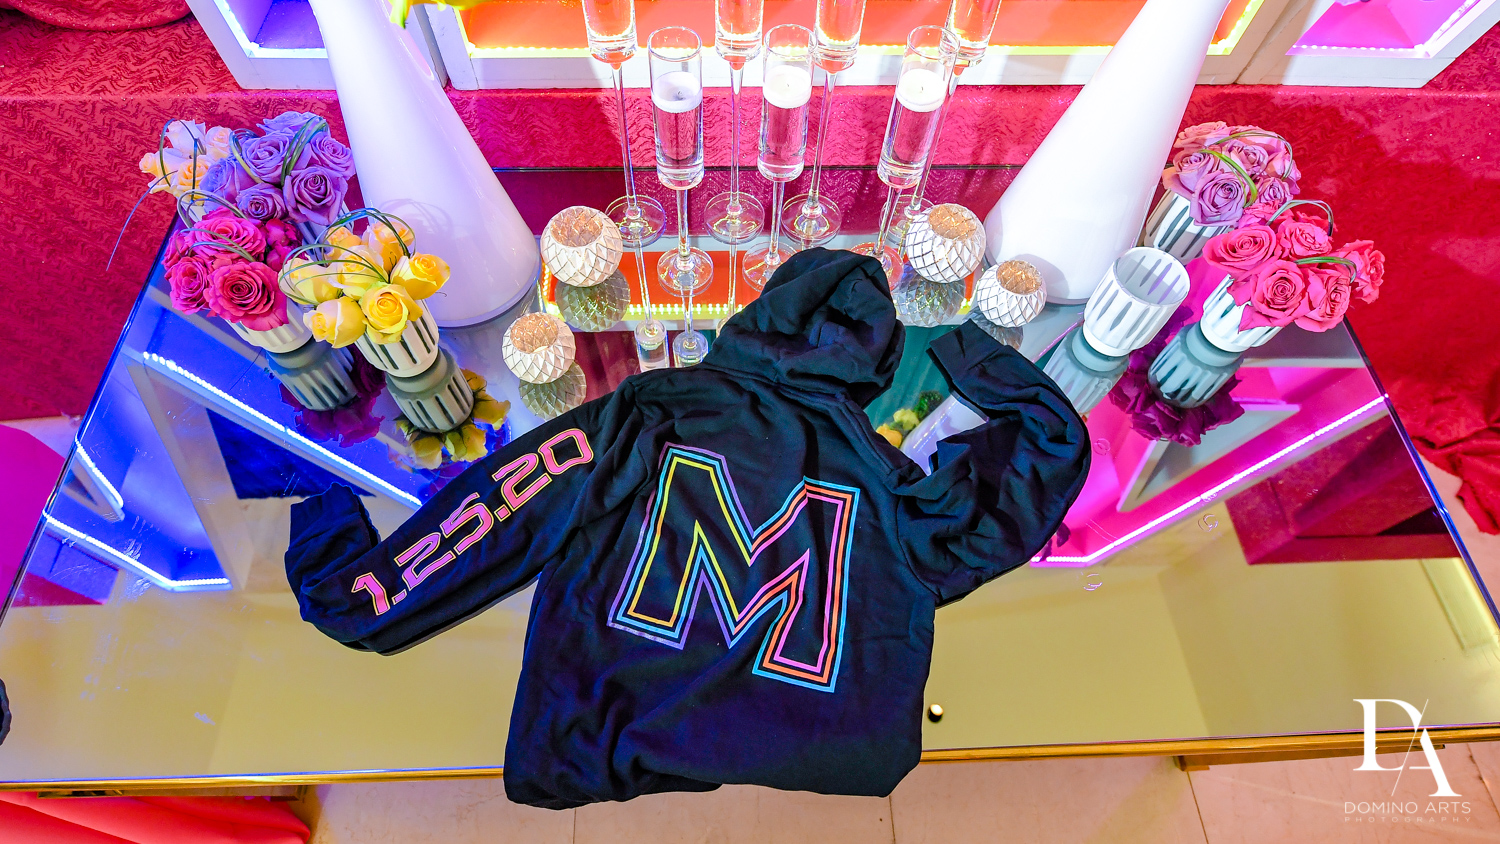 fun souvenirs at Colorful Rainbow BurstBat Mitzvah at Aventura Turnberry Jewish Center by Domino Arts Photography